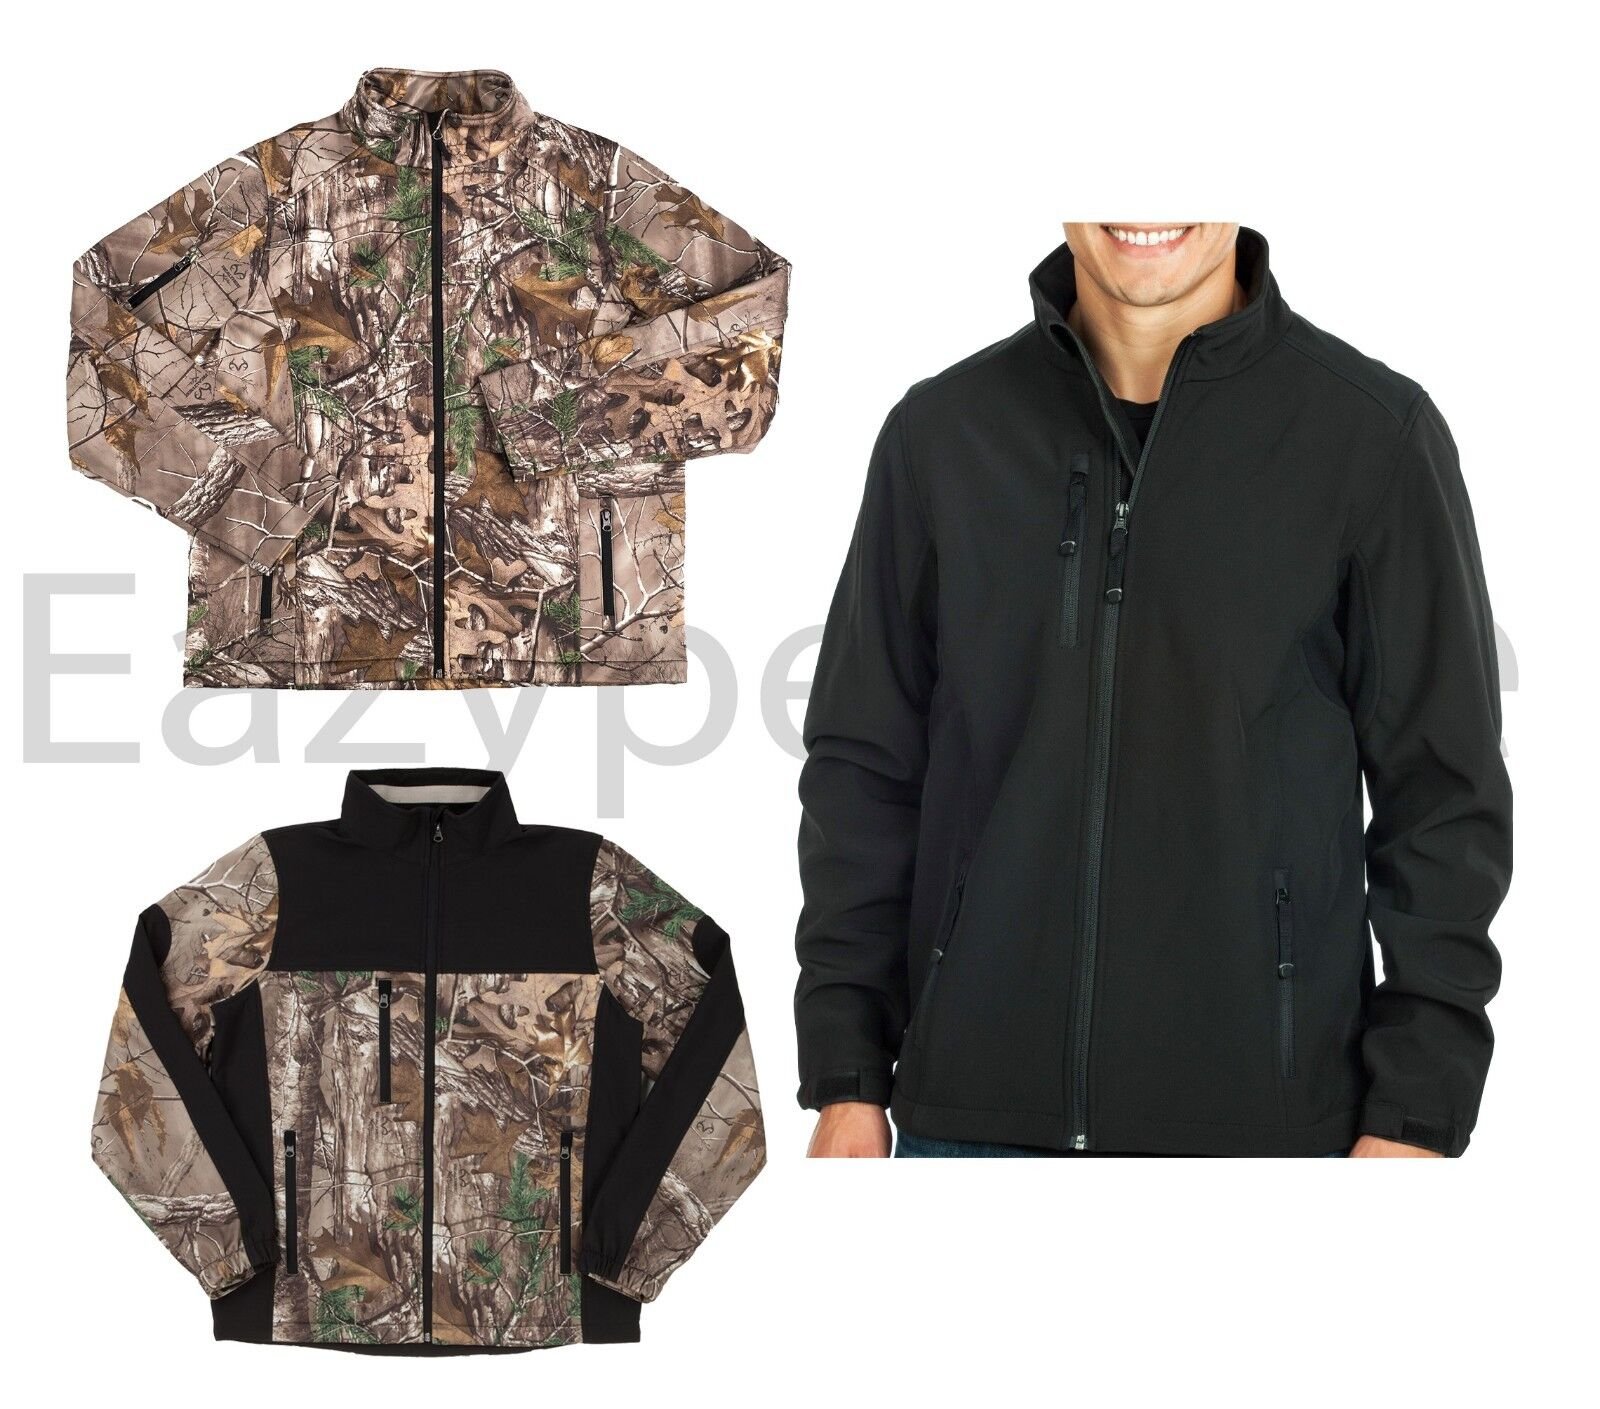 Peaches - Realtree Xtra, Hunt Camouflage, Noir, Tissu Softshell Veste Active,